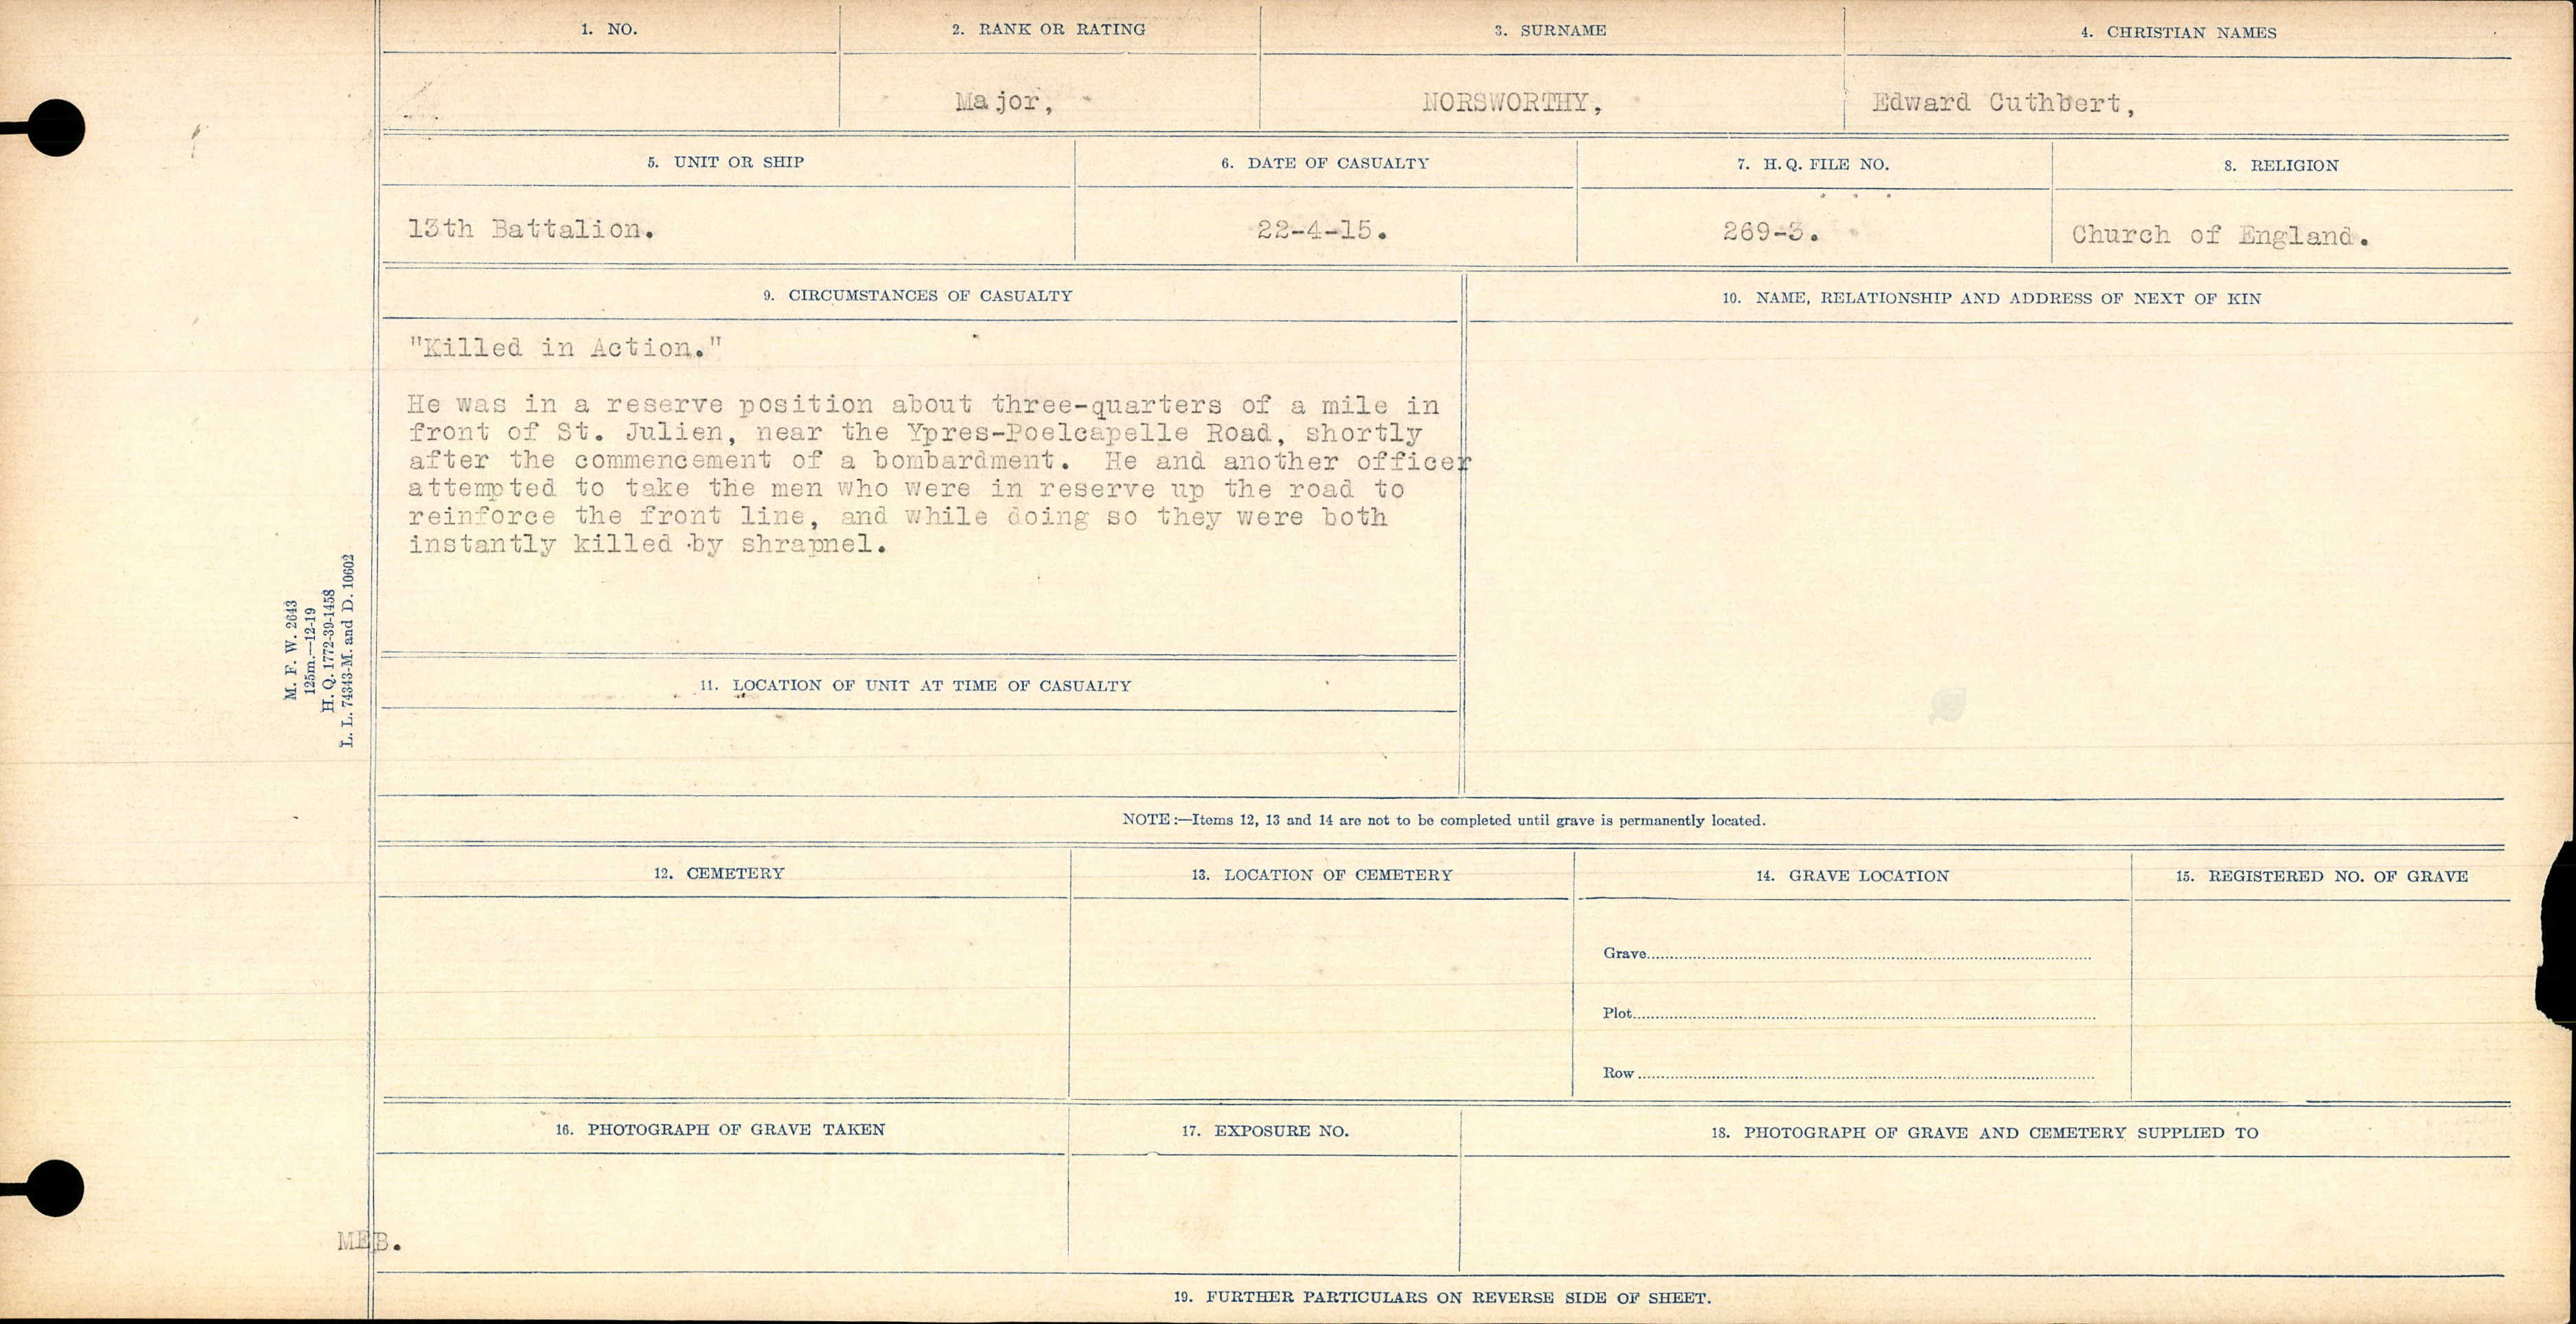 """Circumstances of Death Registers– Report on the death of Major Edward Cuthbert Norsworthy on 22 April 1915, as detailed in the """"Circumstances of Casualty""""."""